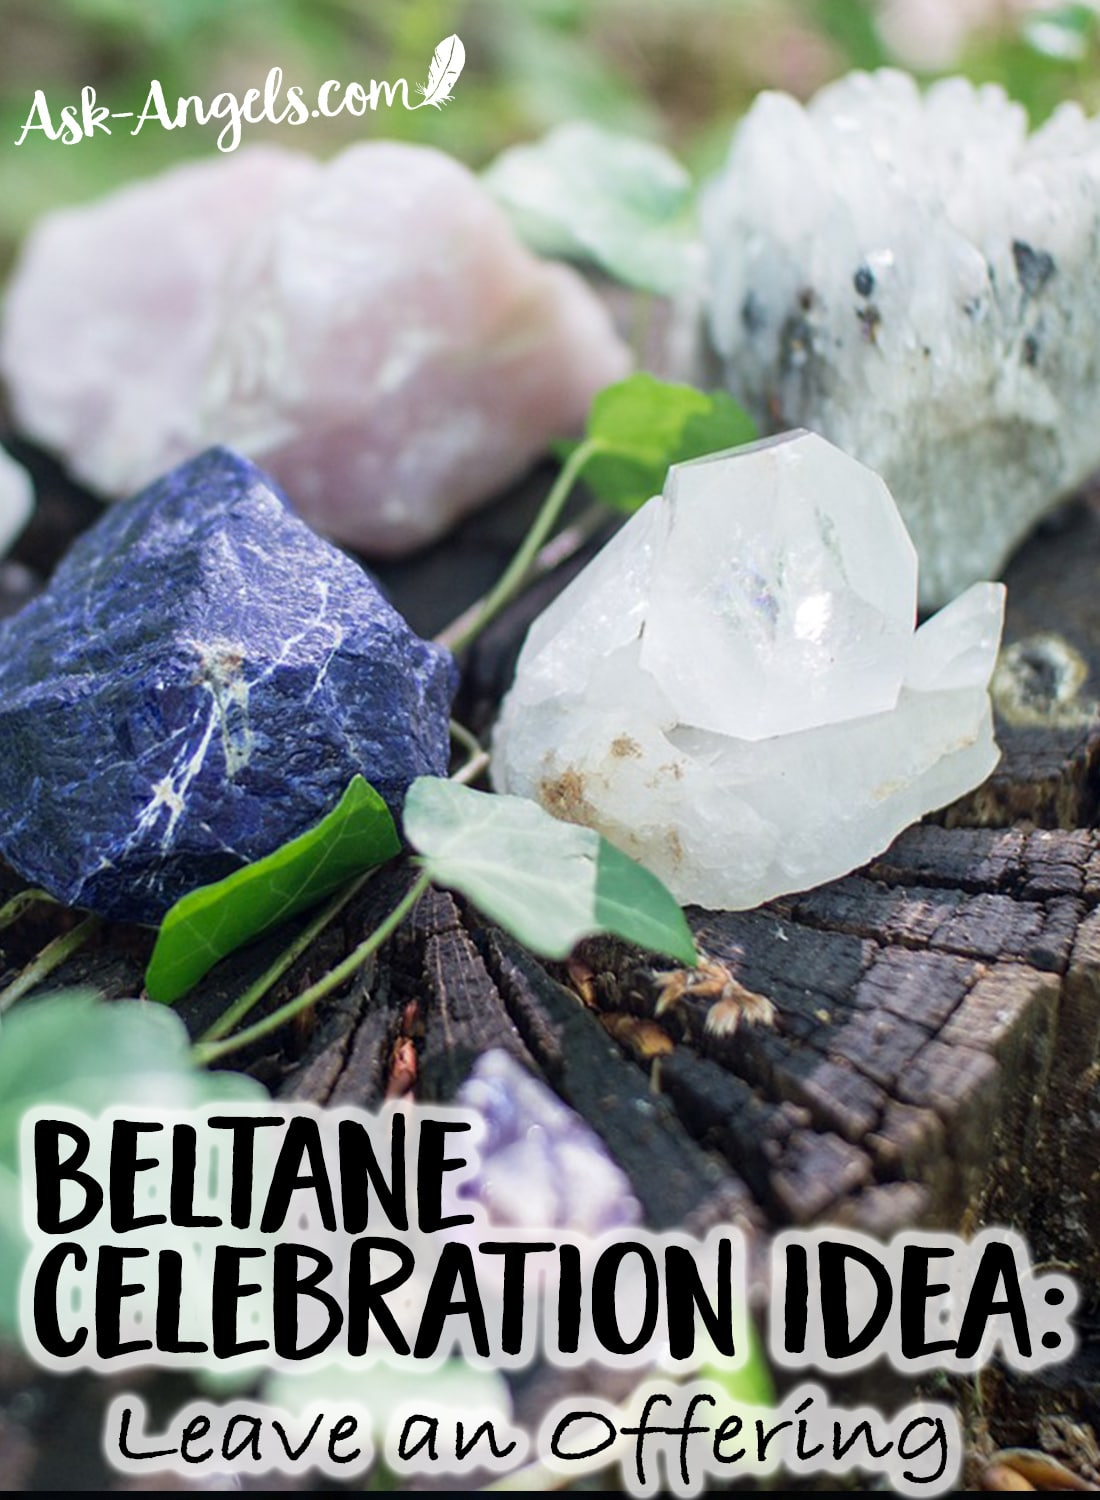 Beltane Celebration Idea - Leave an Offering for the Faeries or for Nature